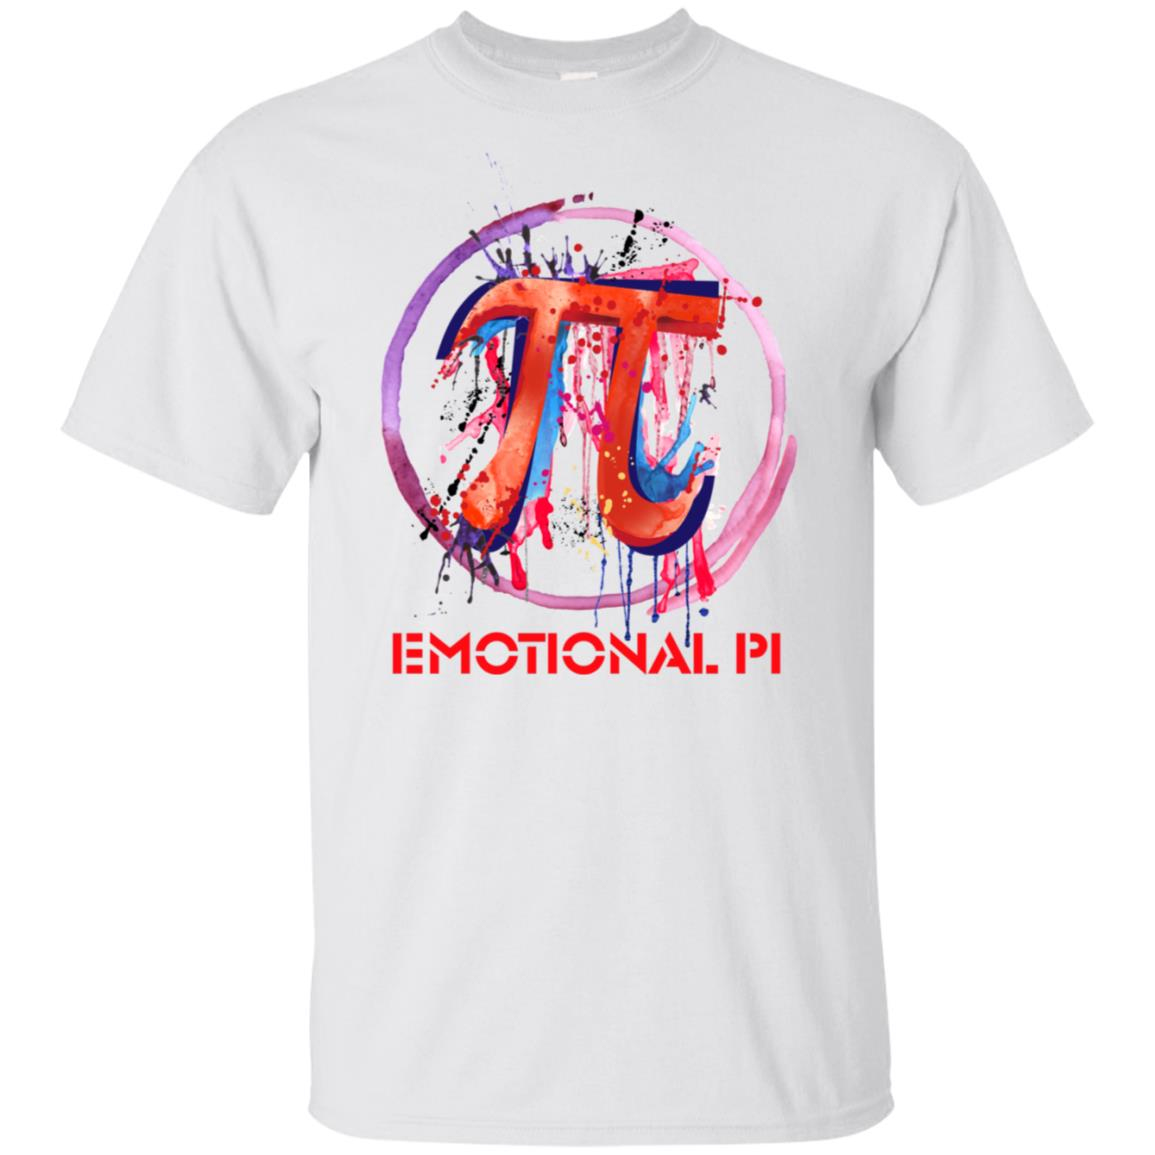 Emotional Pi, Drip Art-1 Unisex Short Sleeve